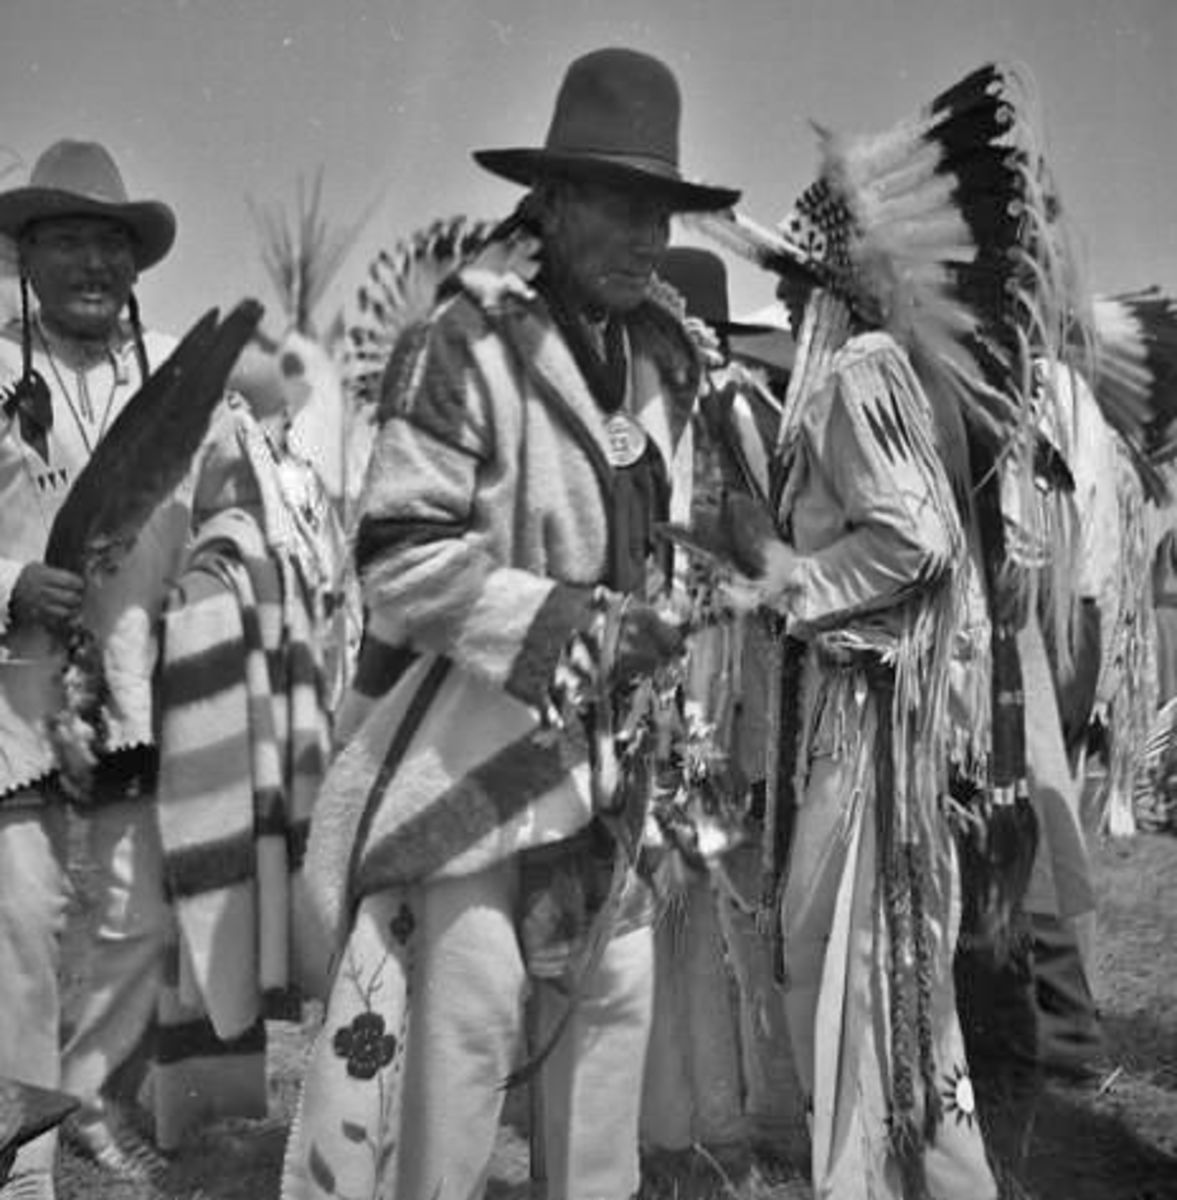 Members of the Siyeh or Sai-yeh (Crazy Dog) Society in 1942, named alter a famous Blackfeet warrior.